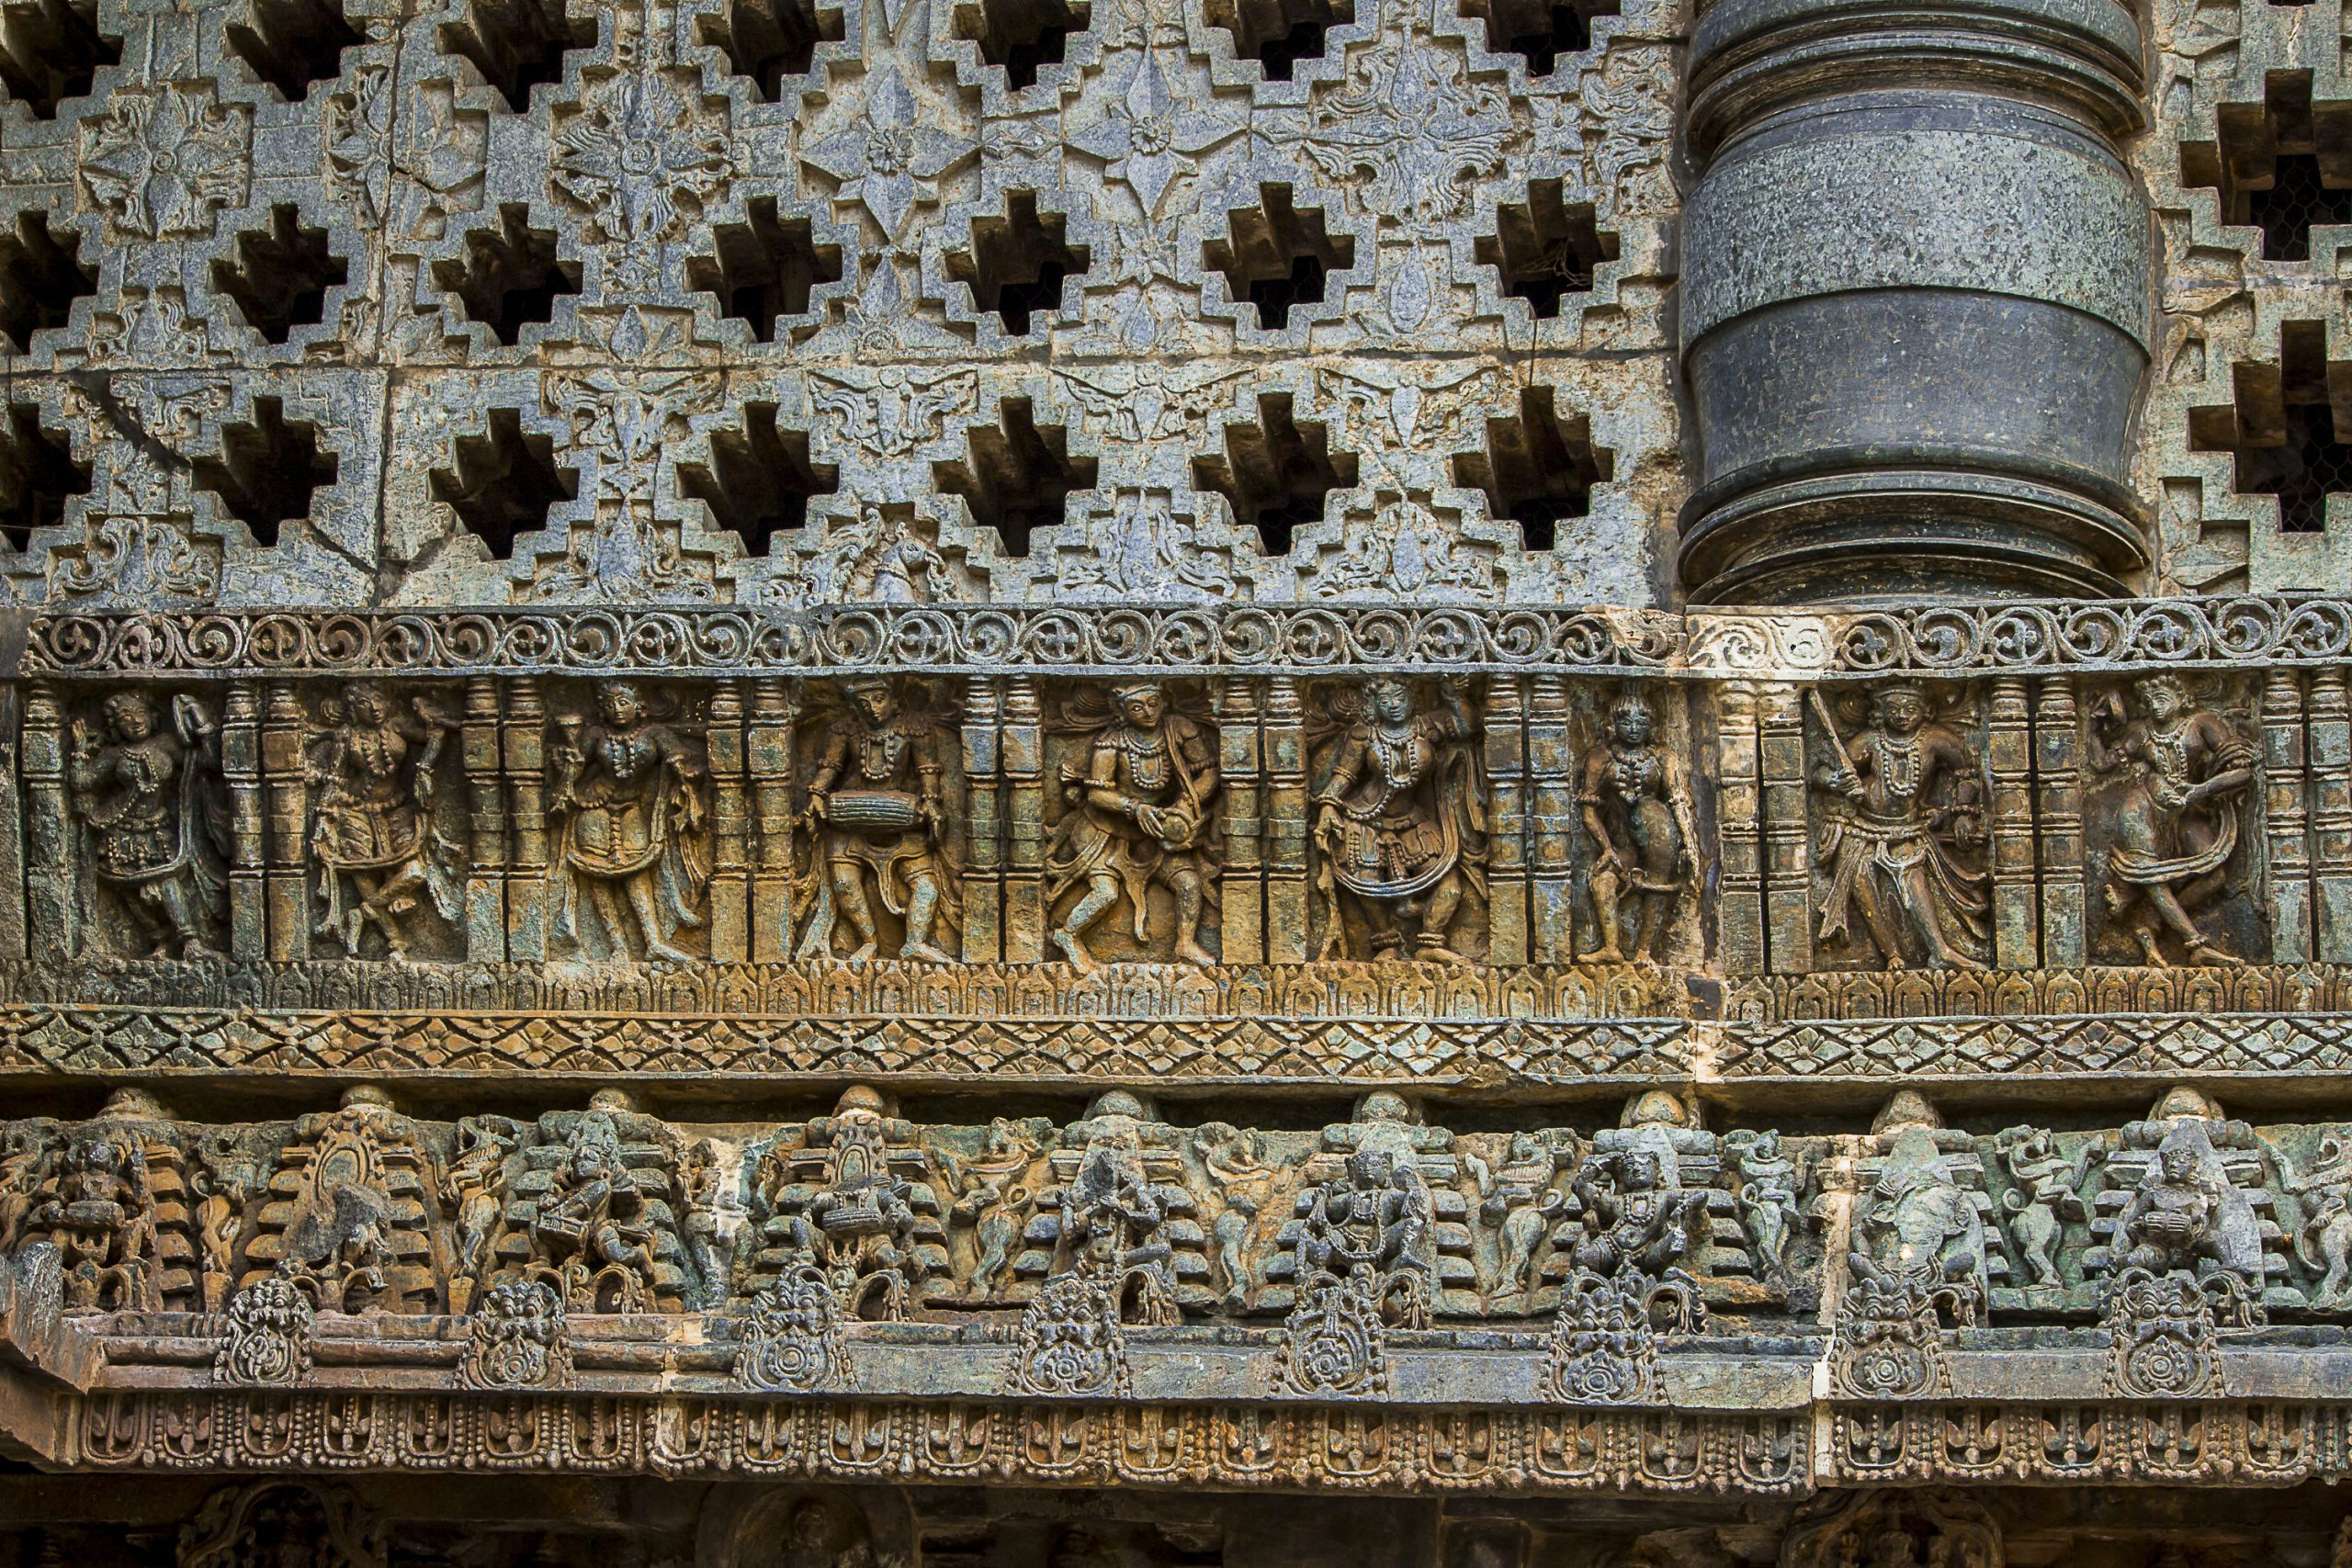 Stone carving in a temple in Halebeedu